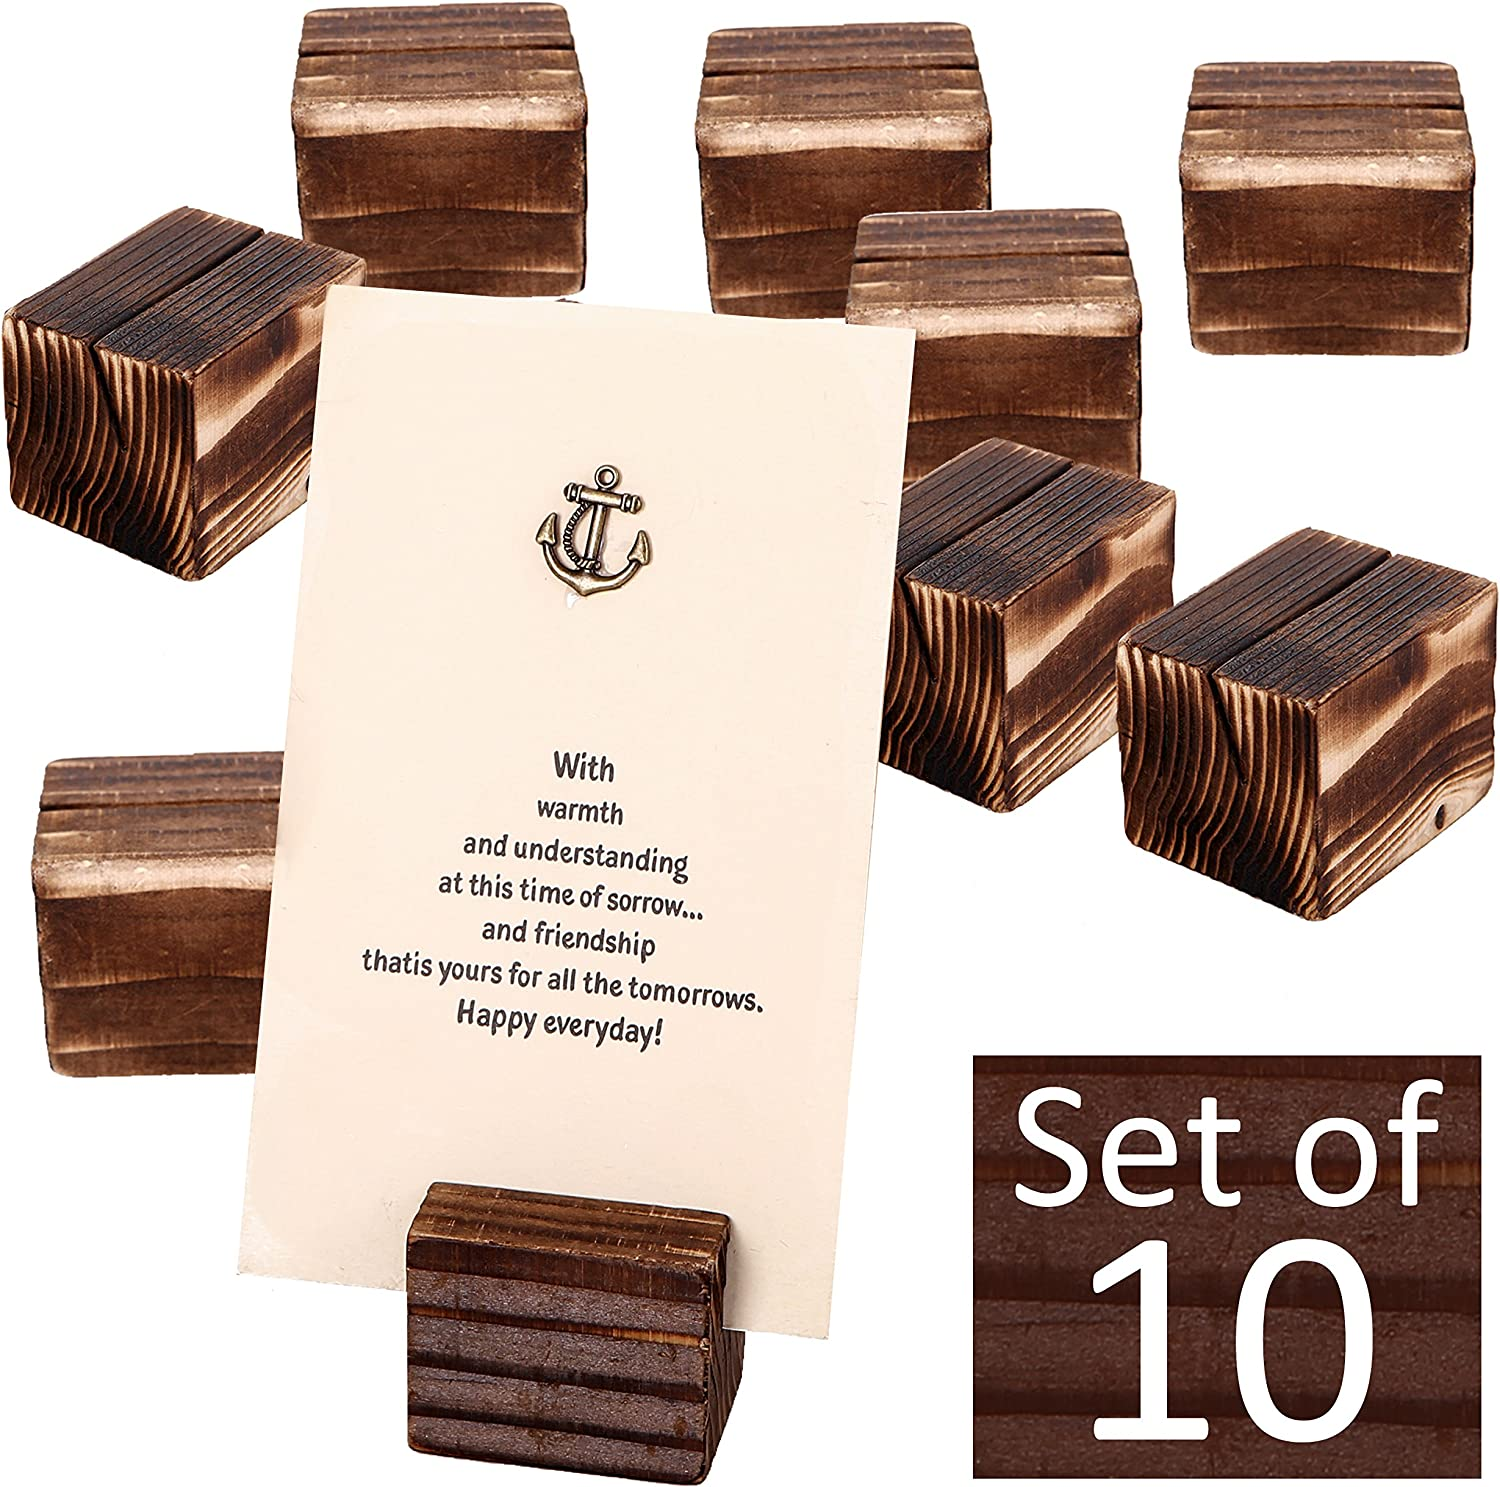 MyGift Rustic Brown Wood 2 Inch Place Card Holders, Table Number Stands, Set of 10